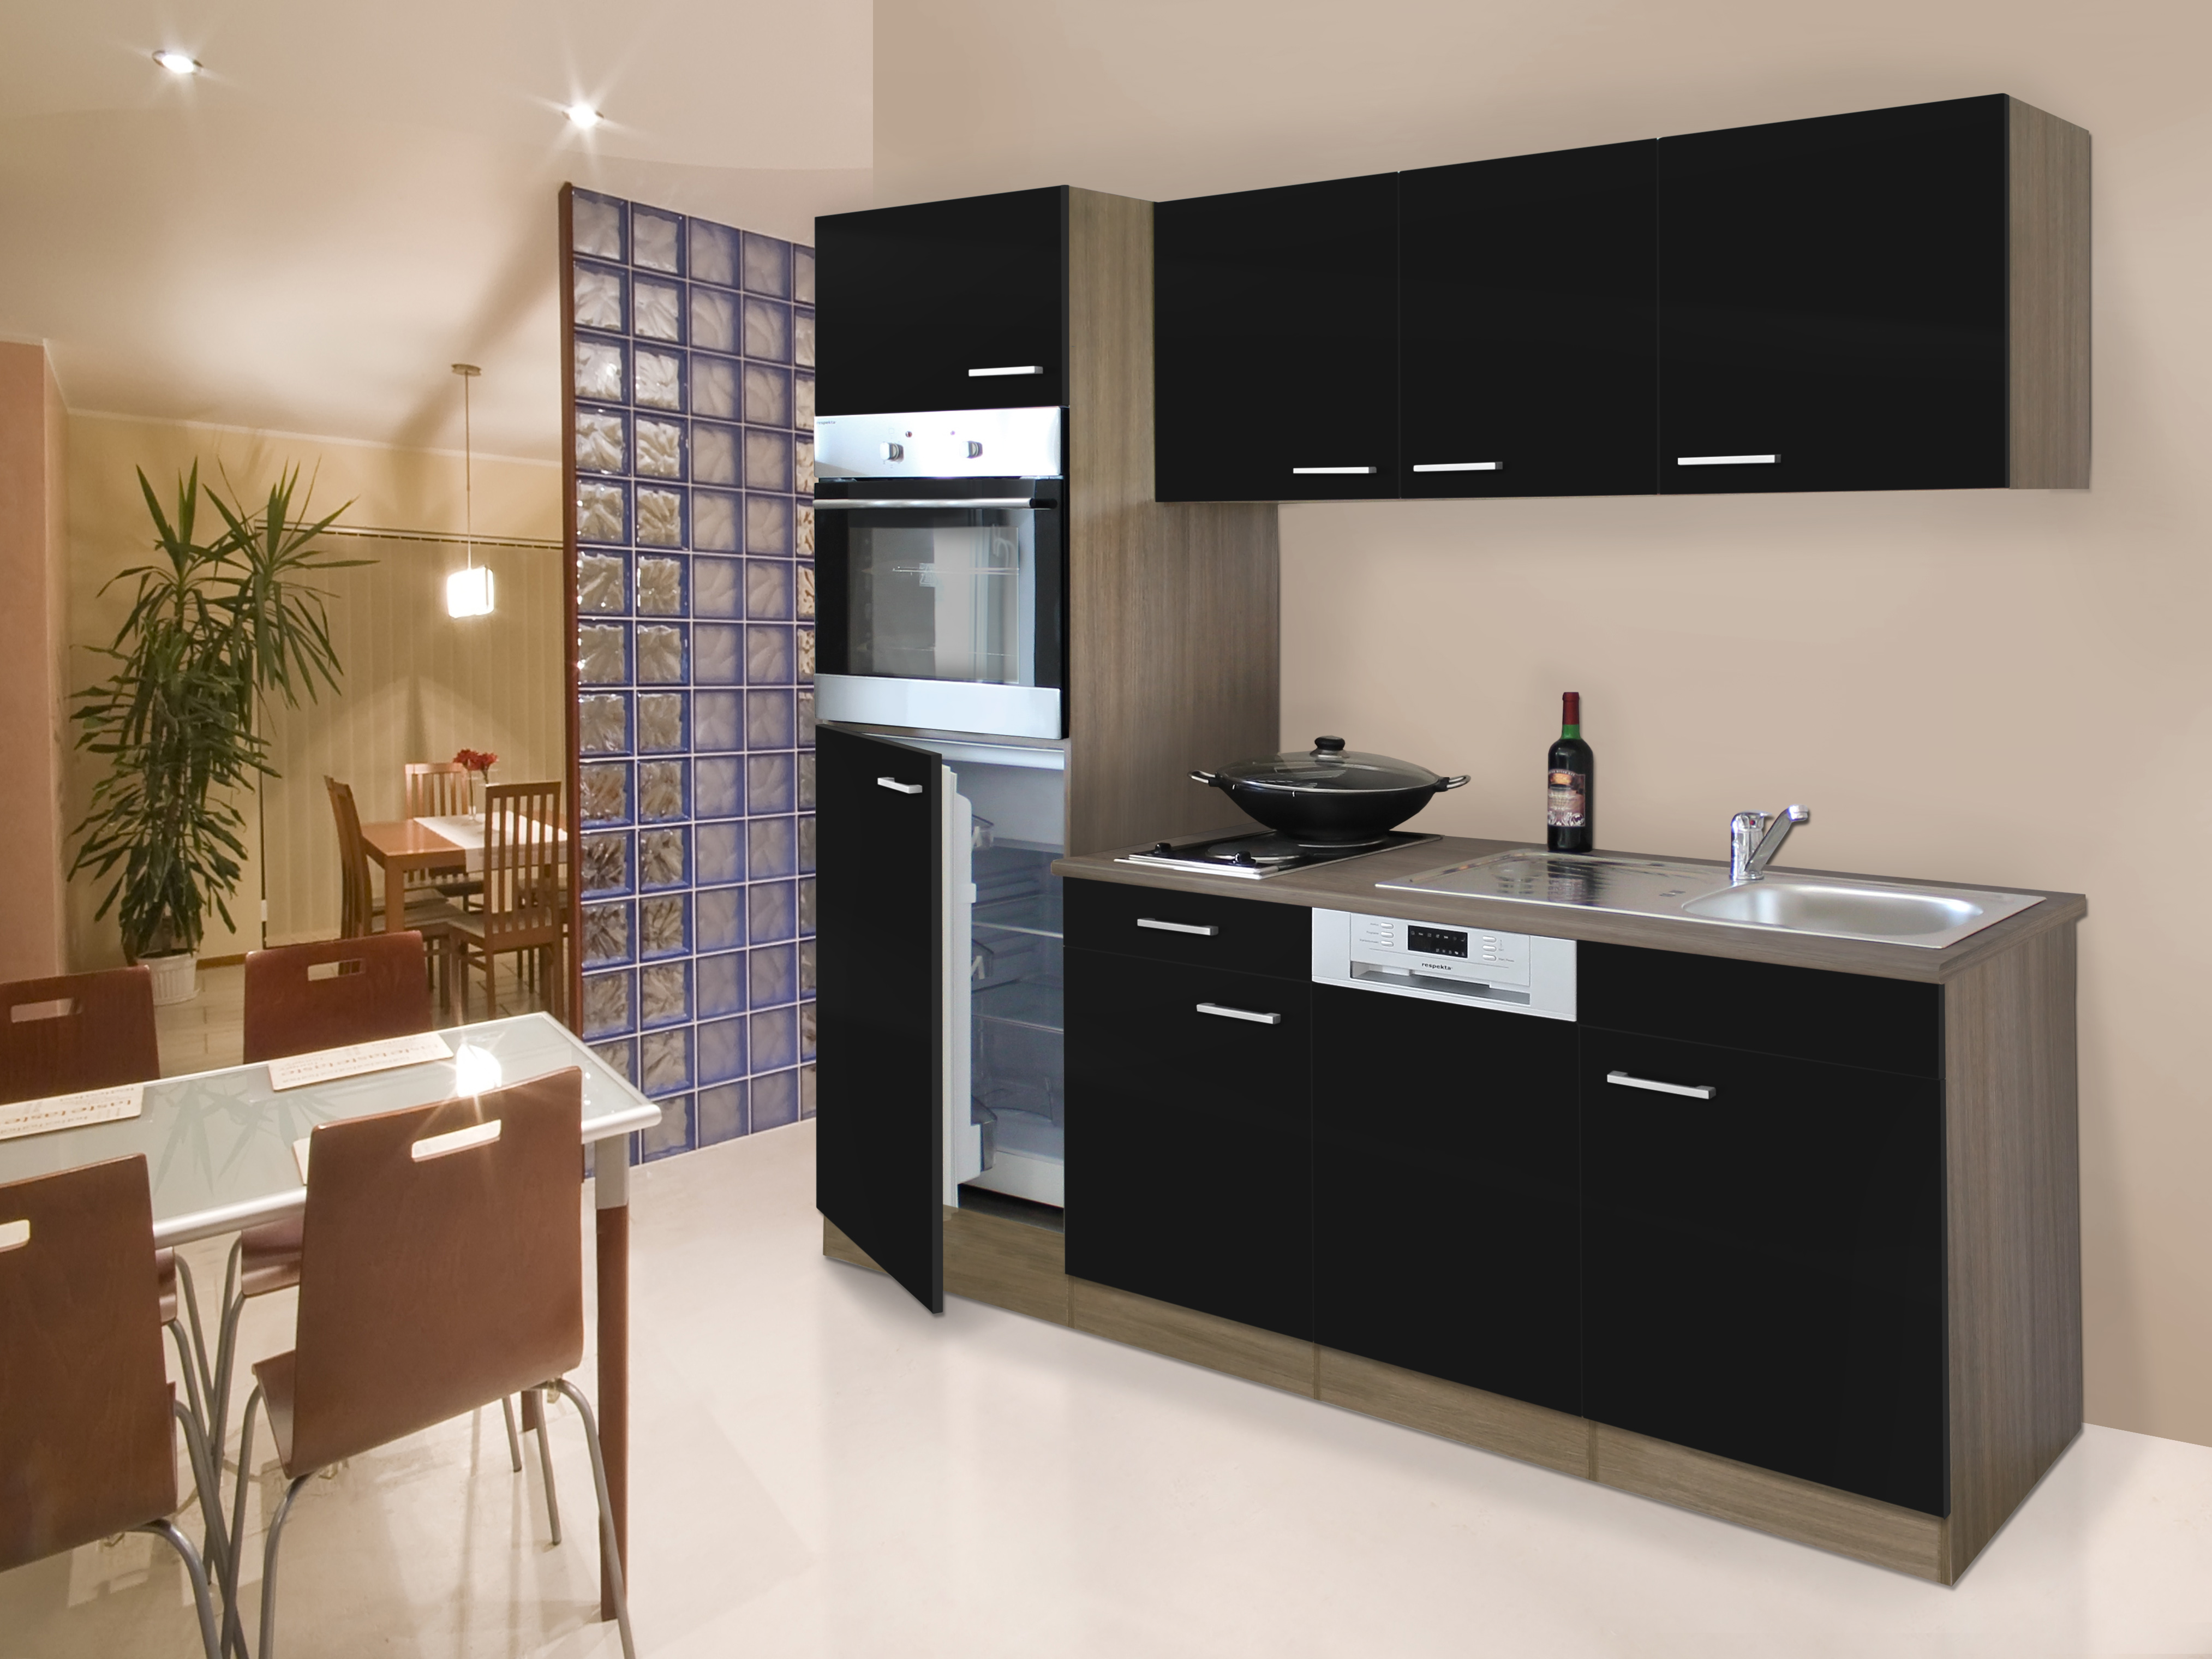 respekta cuisine int gr e simple bloc de 205 cm en ch ne. Black Bedroom Furniture Sets. Home Design Ideas